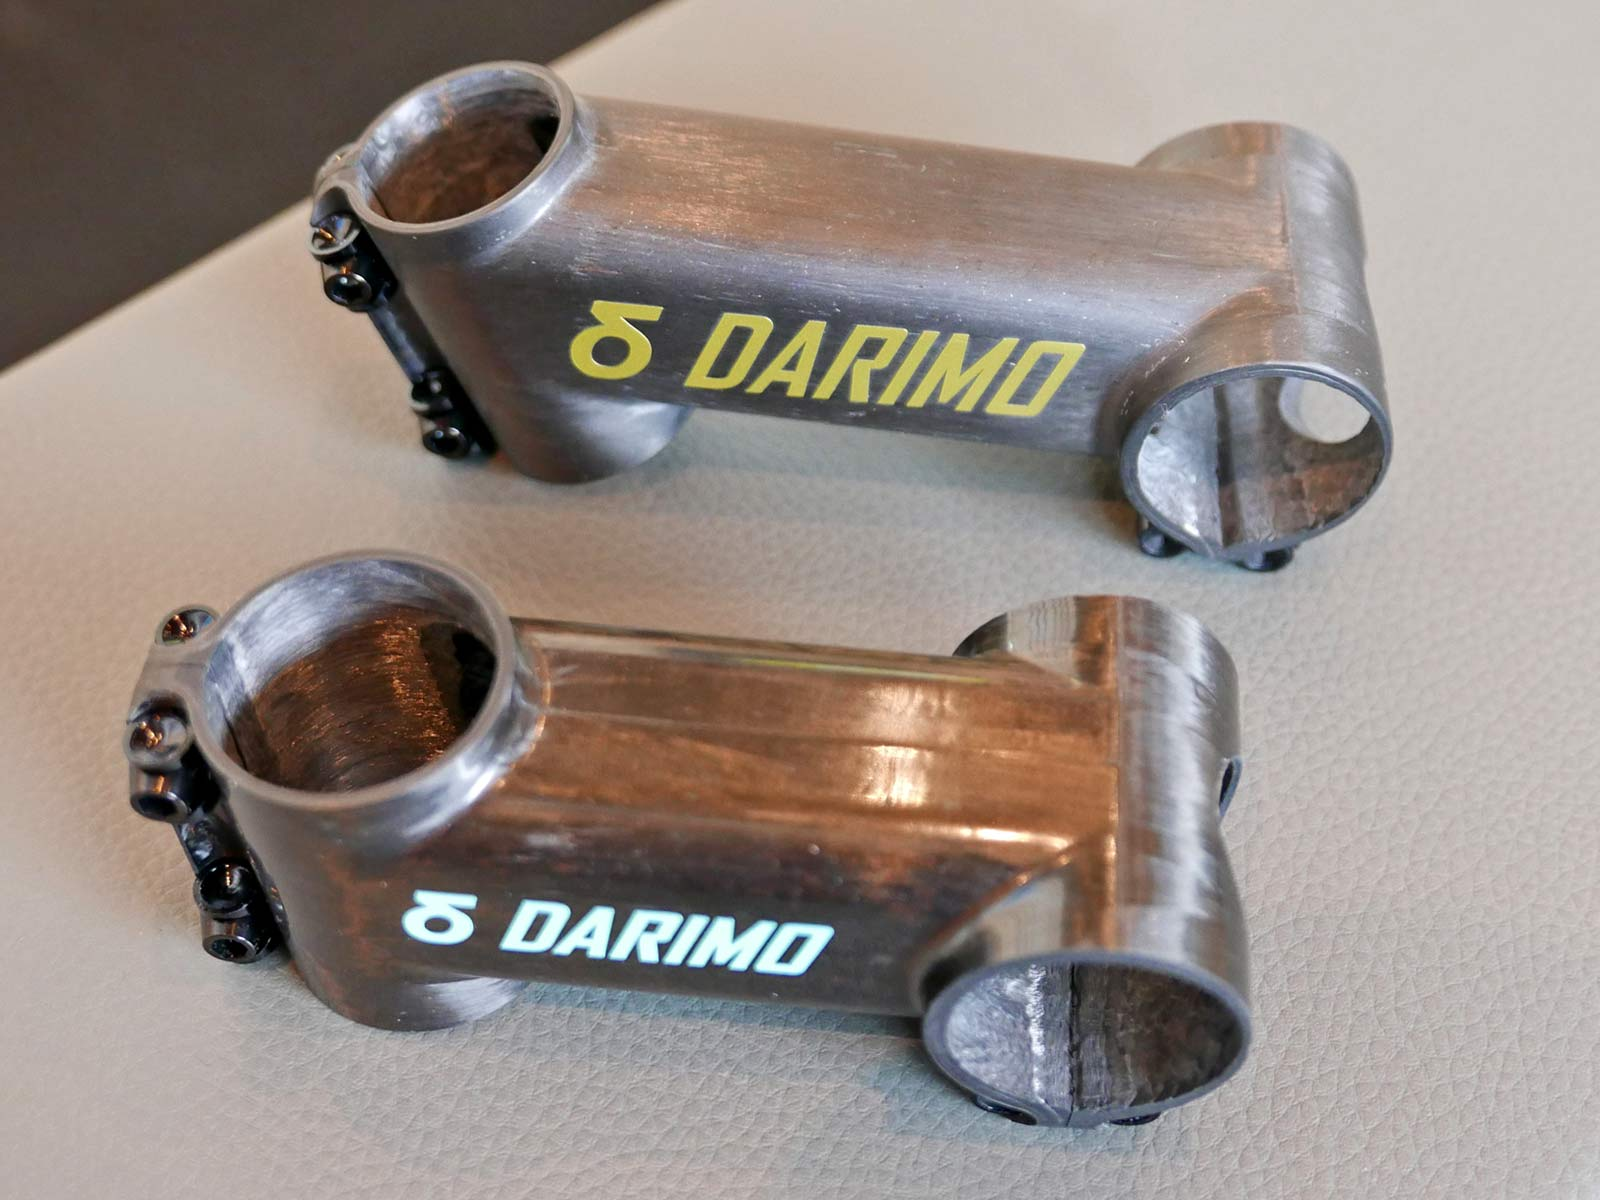 Darimo IX2 ultralight carbon stems in more size options